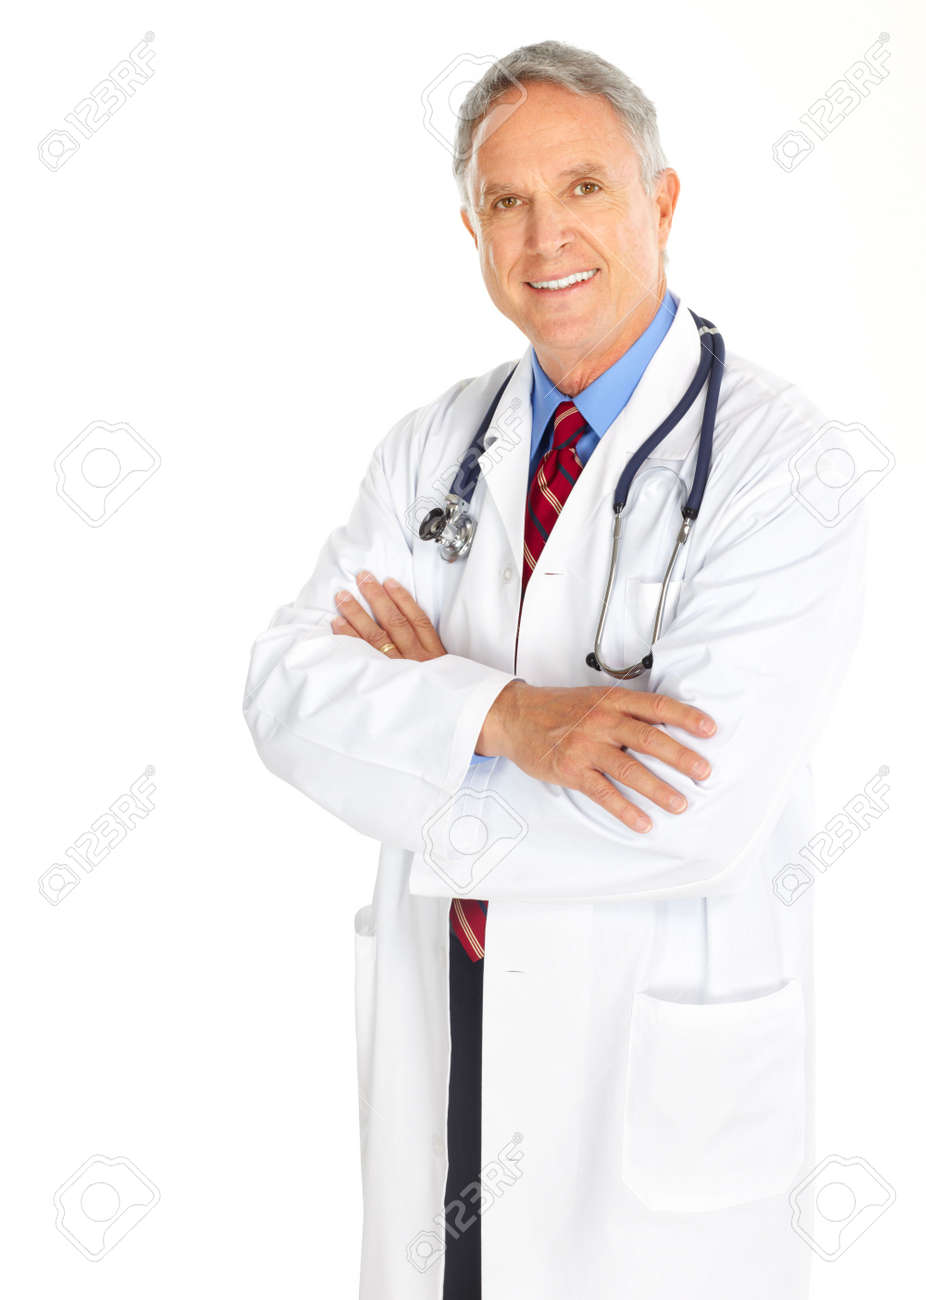 Smiling medical doctor with stethoscope. Isolated over white background Stock Photo - 5614779